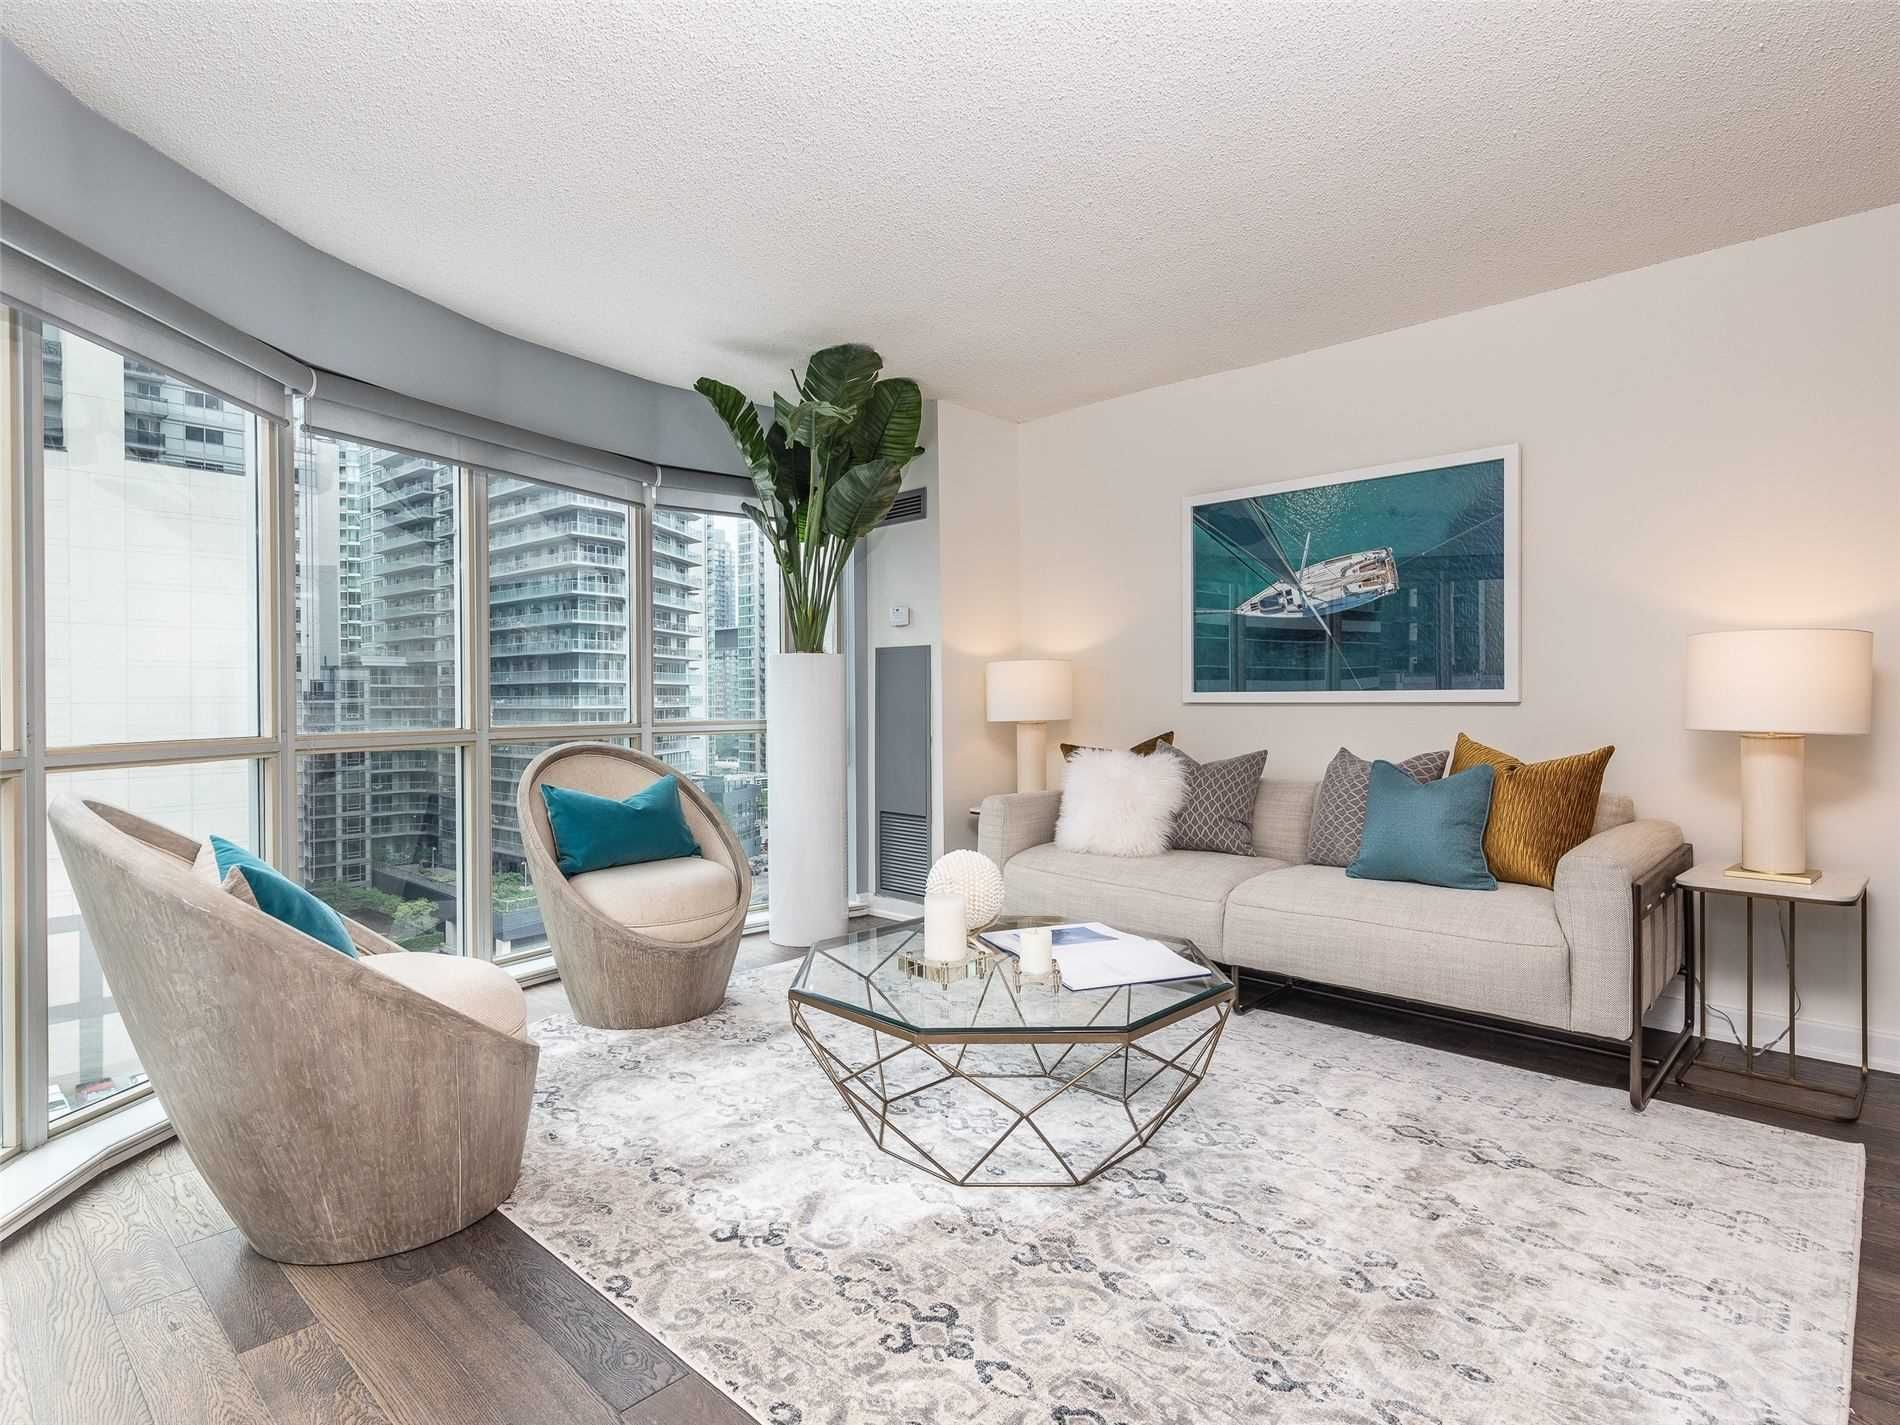 36 Blue Jays Way, unit 912 for sale in Toronto - image #1